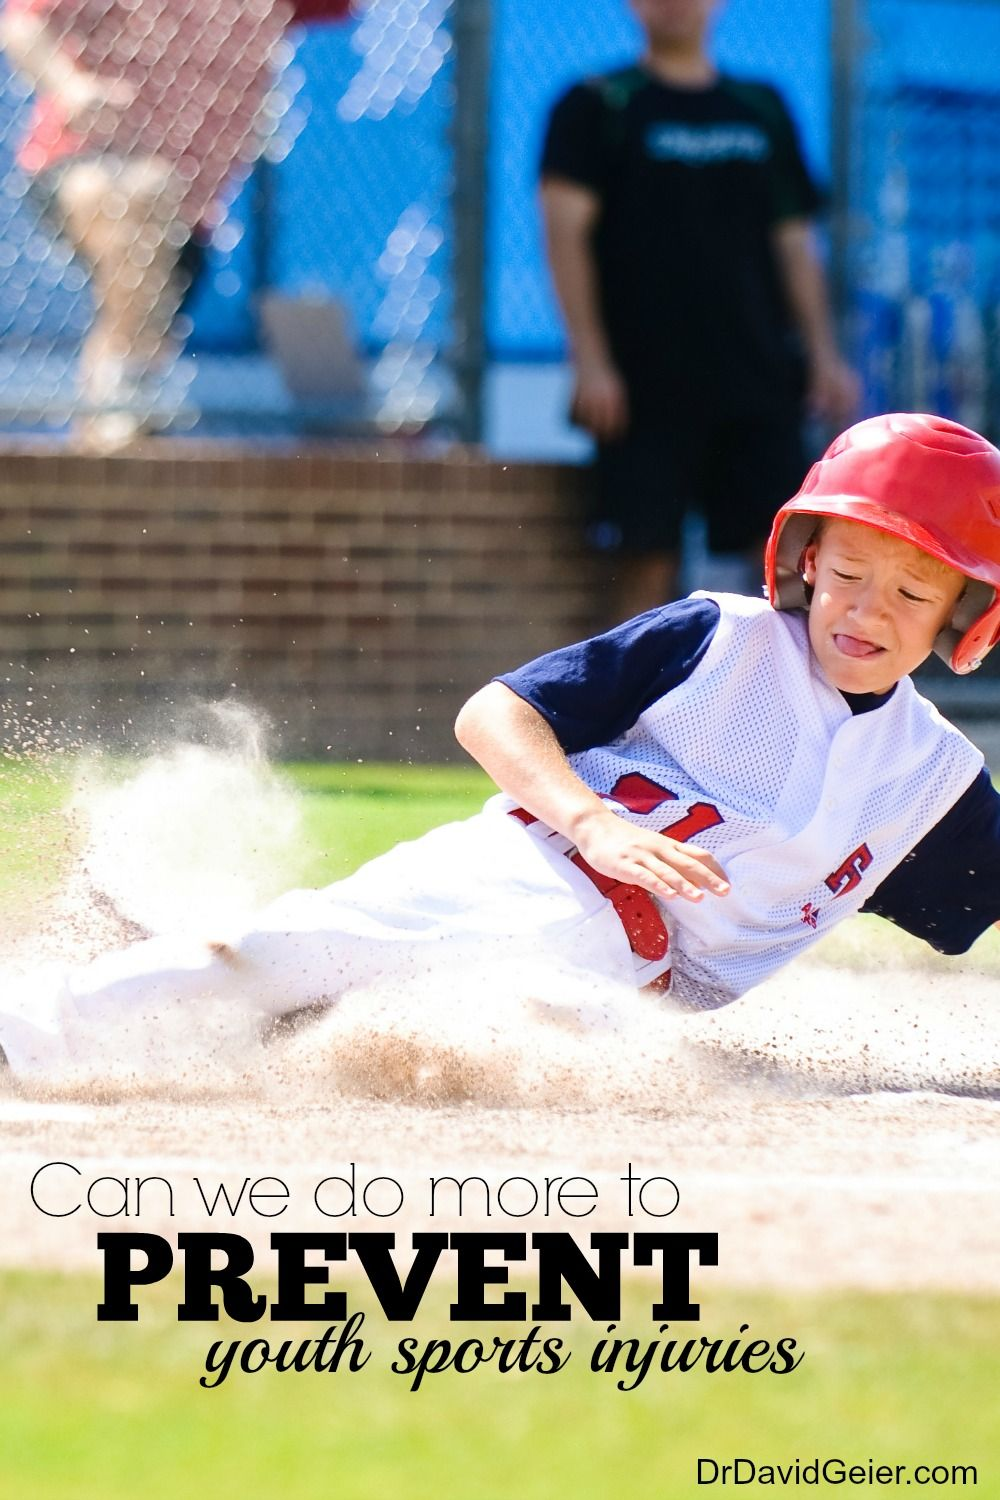 Can we do more to prevent youth sports injuries? Dr